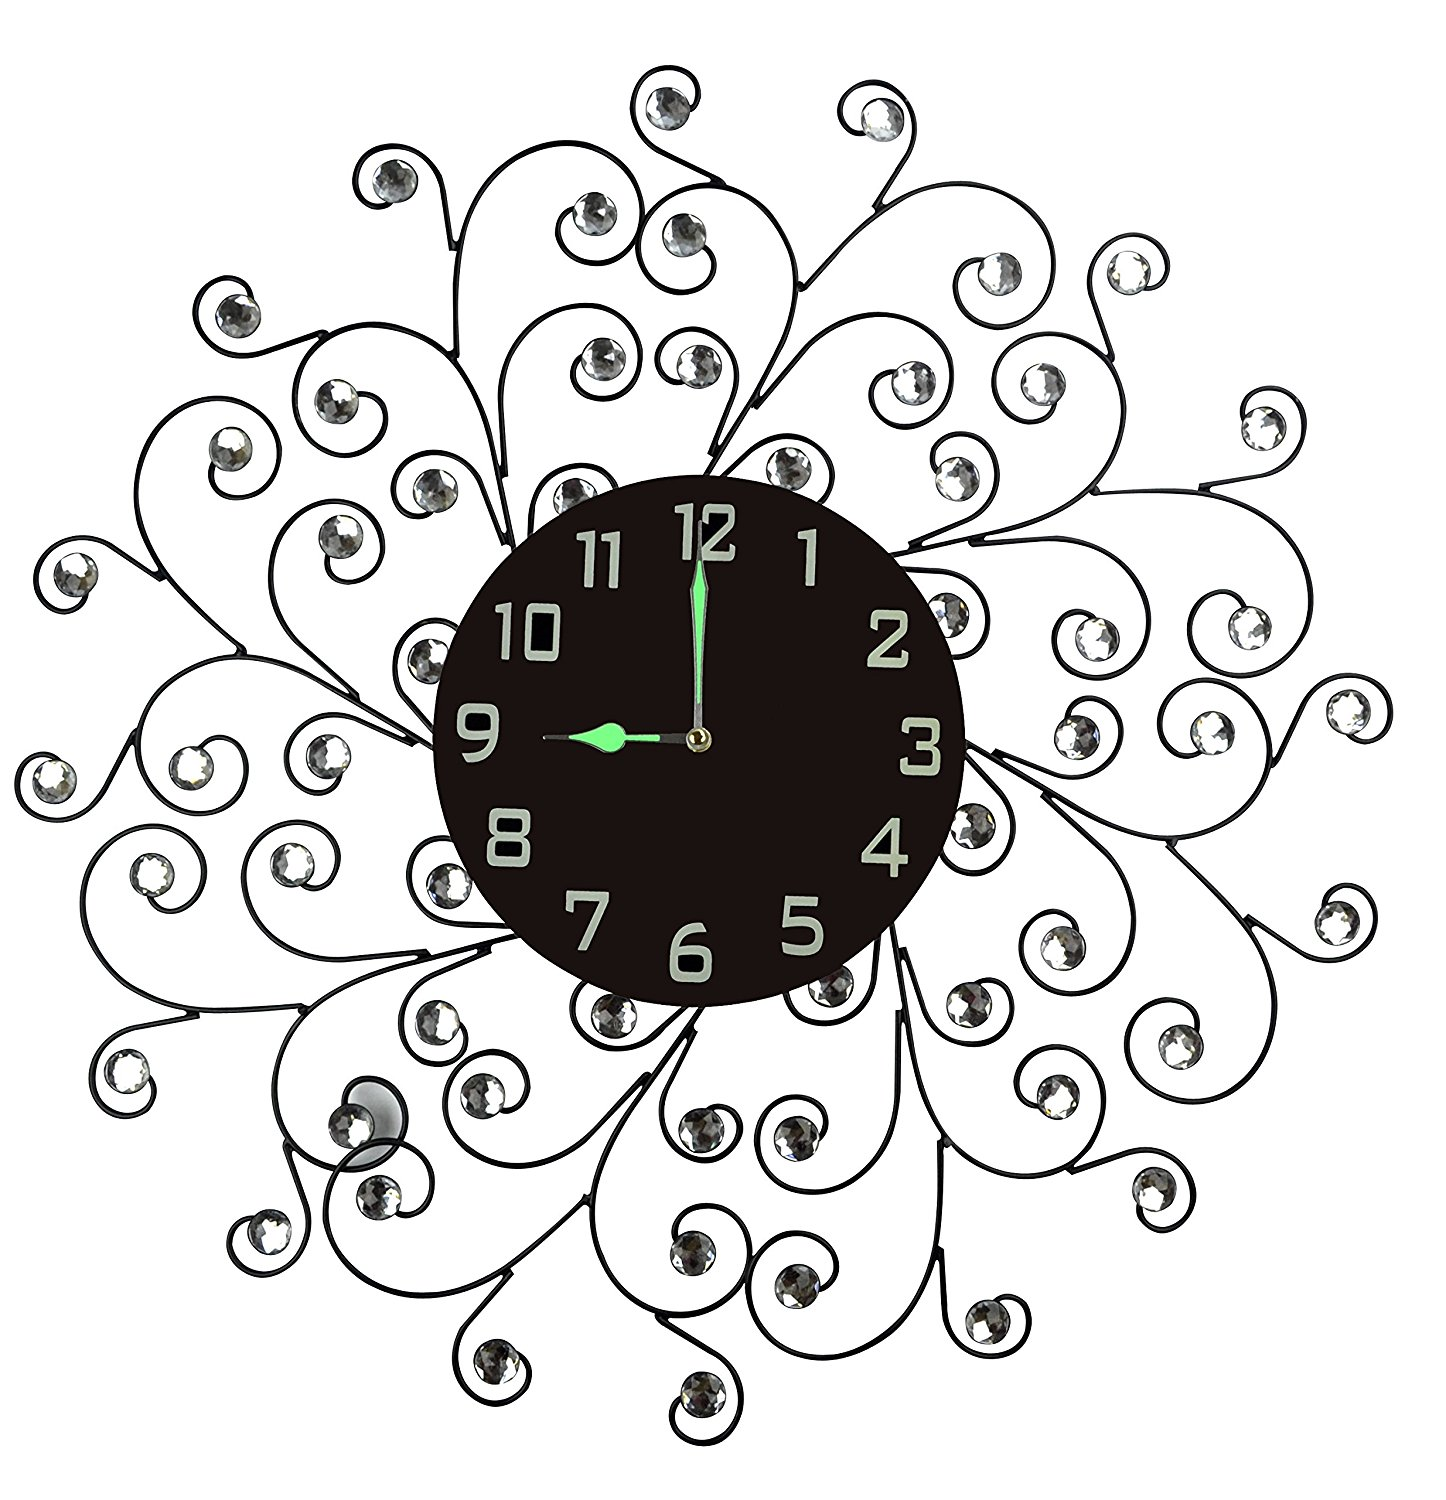 "Lulu Decor, Creeper Metal Wall Clock 25"", 9.5"" Black Glass Dial with Arabic Numbers, Decorative Night Dial Clock for Living Room, Bedroom, Office Space"